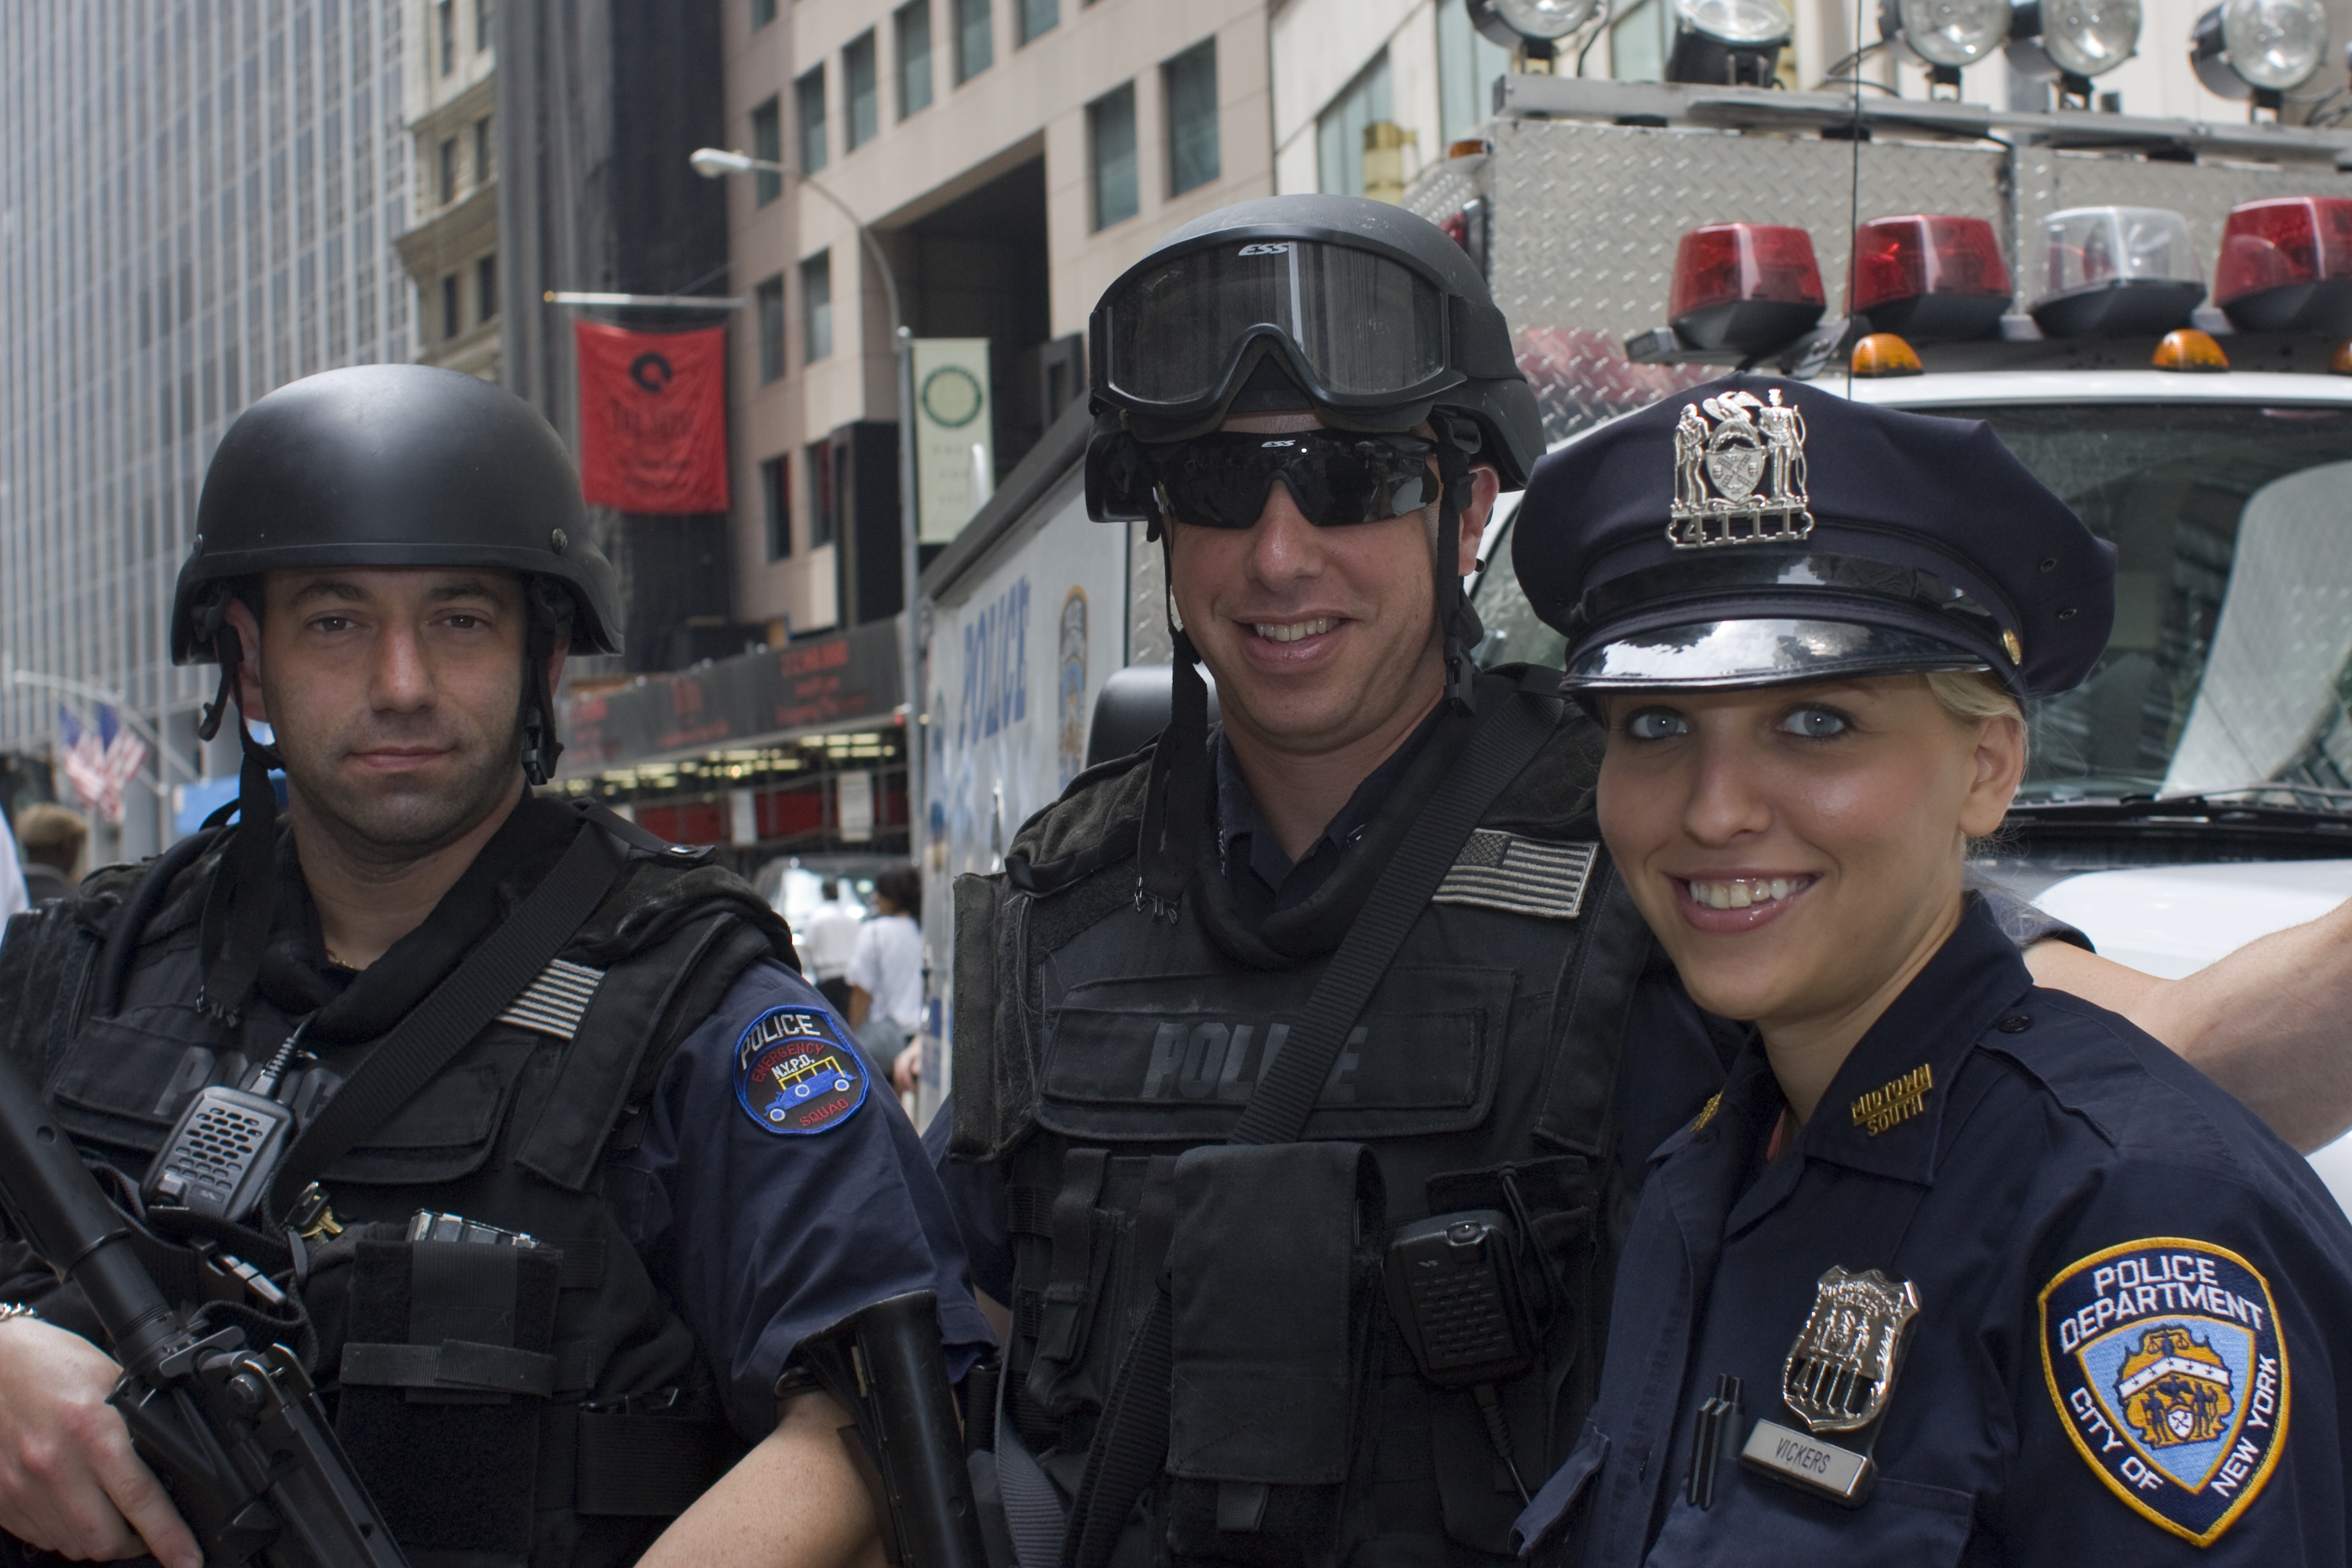 US Police Officers